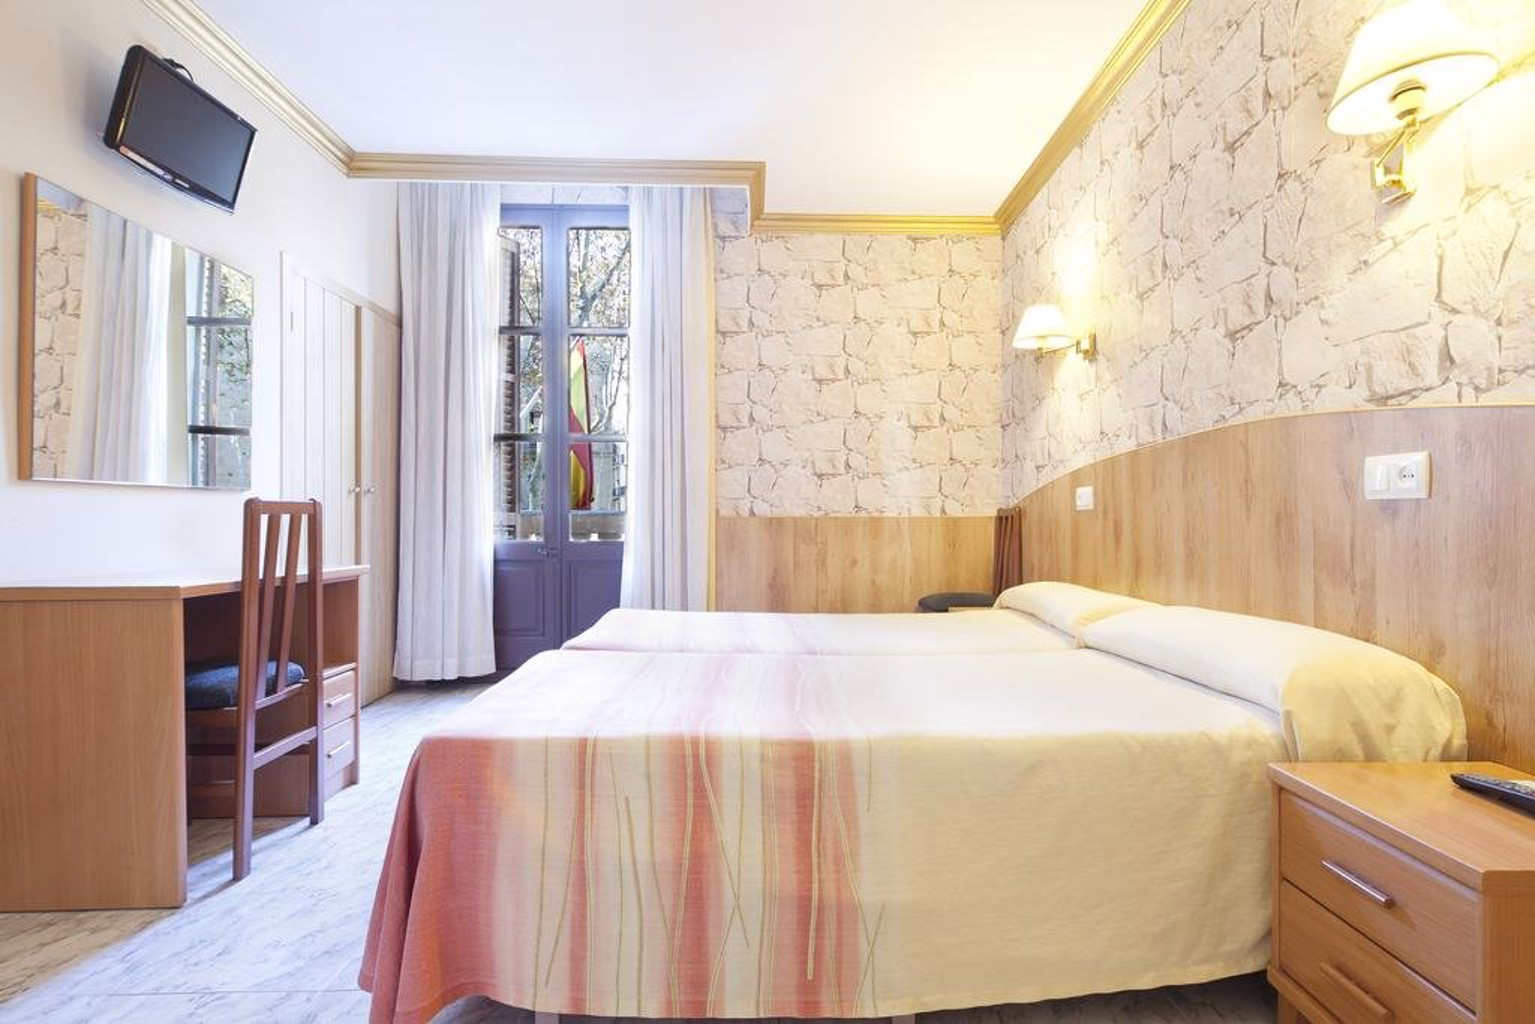 Gallery image of Hotel Fornos